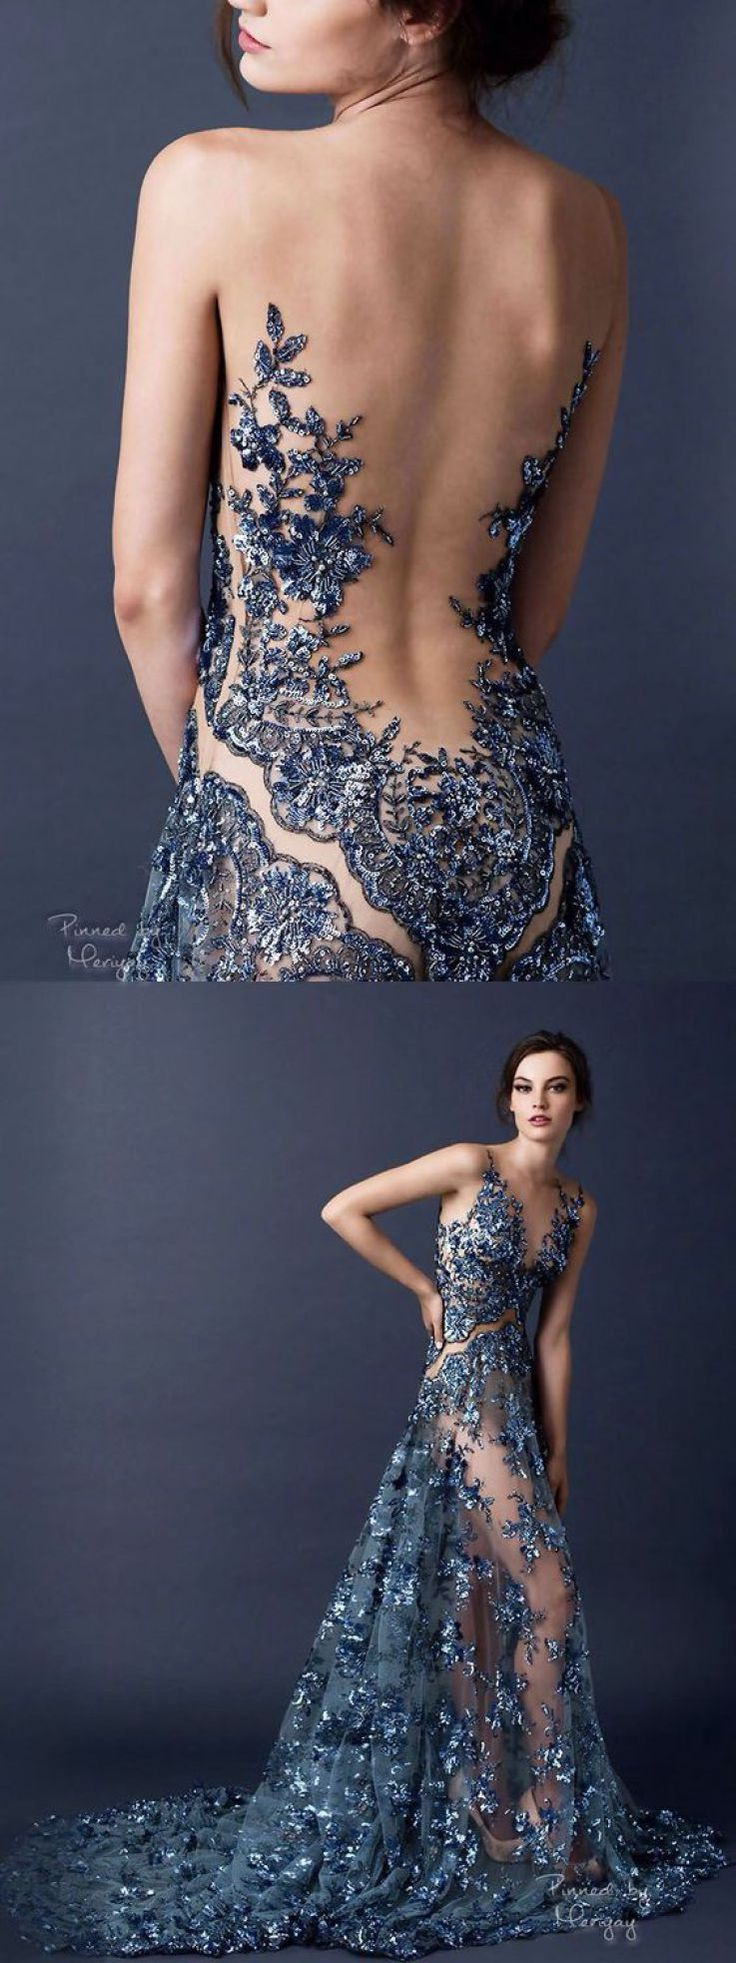 backless-dress16